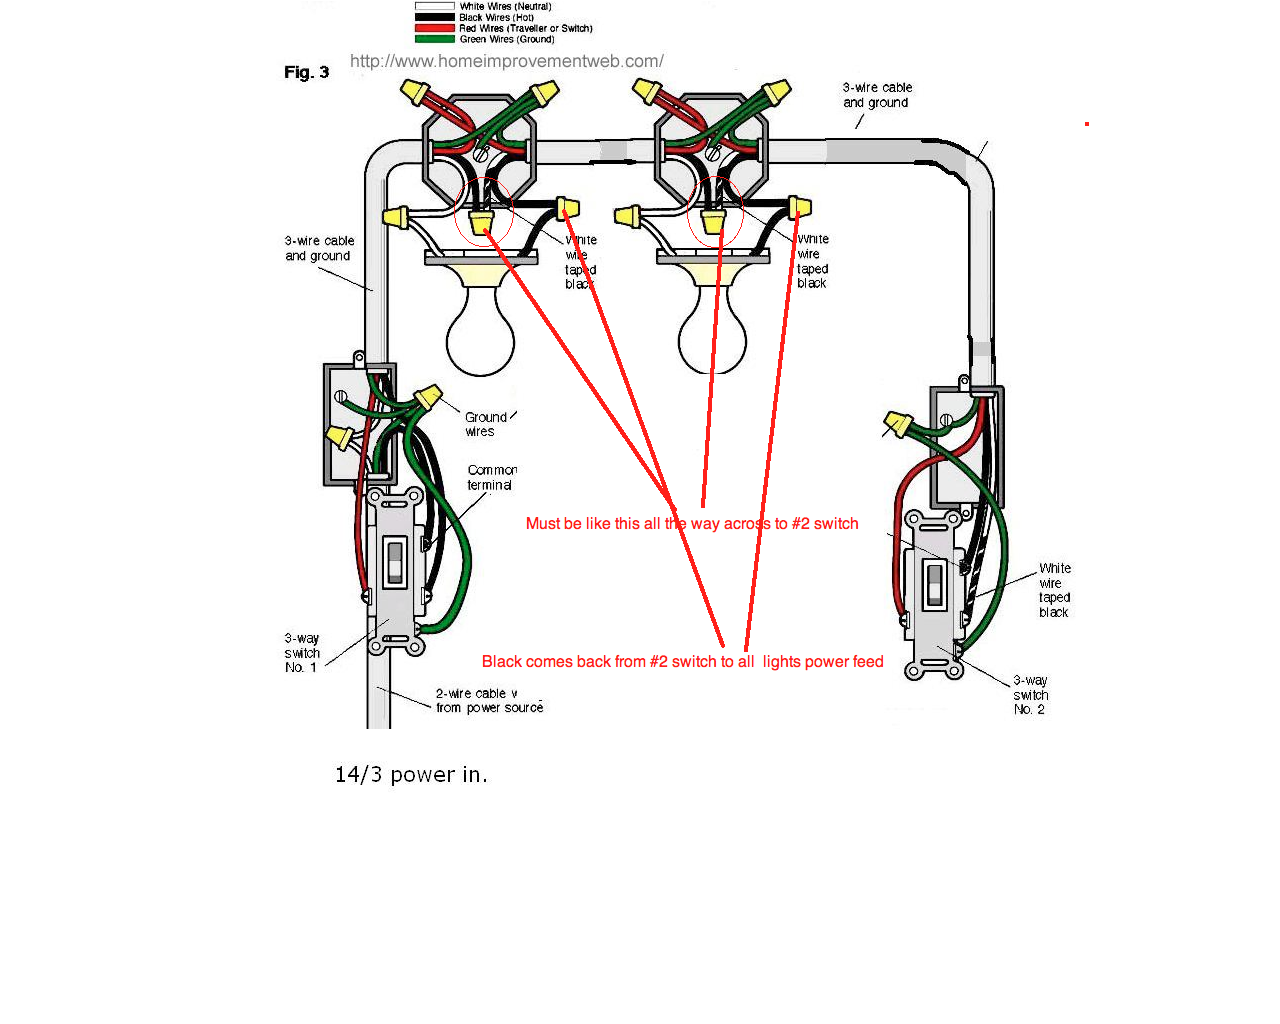 wiring diagram 3 way images wiring diagram 3 way why wont my why wont my three way switch work electricians